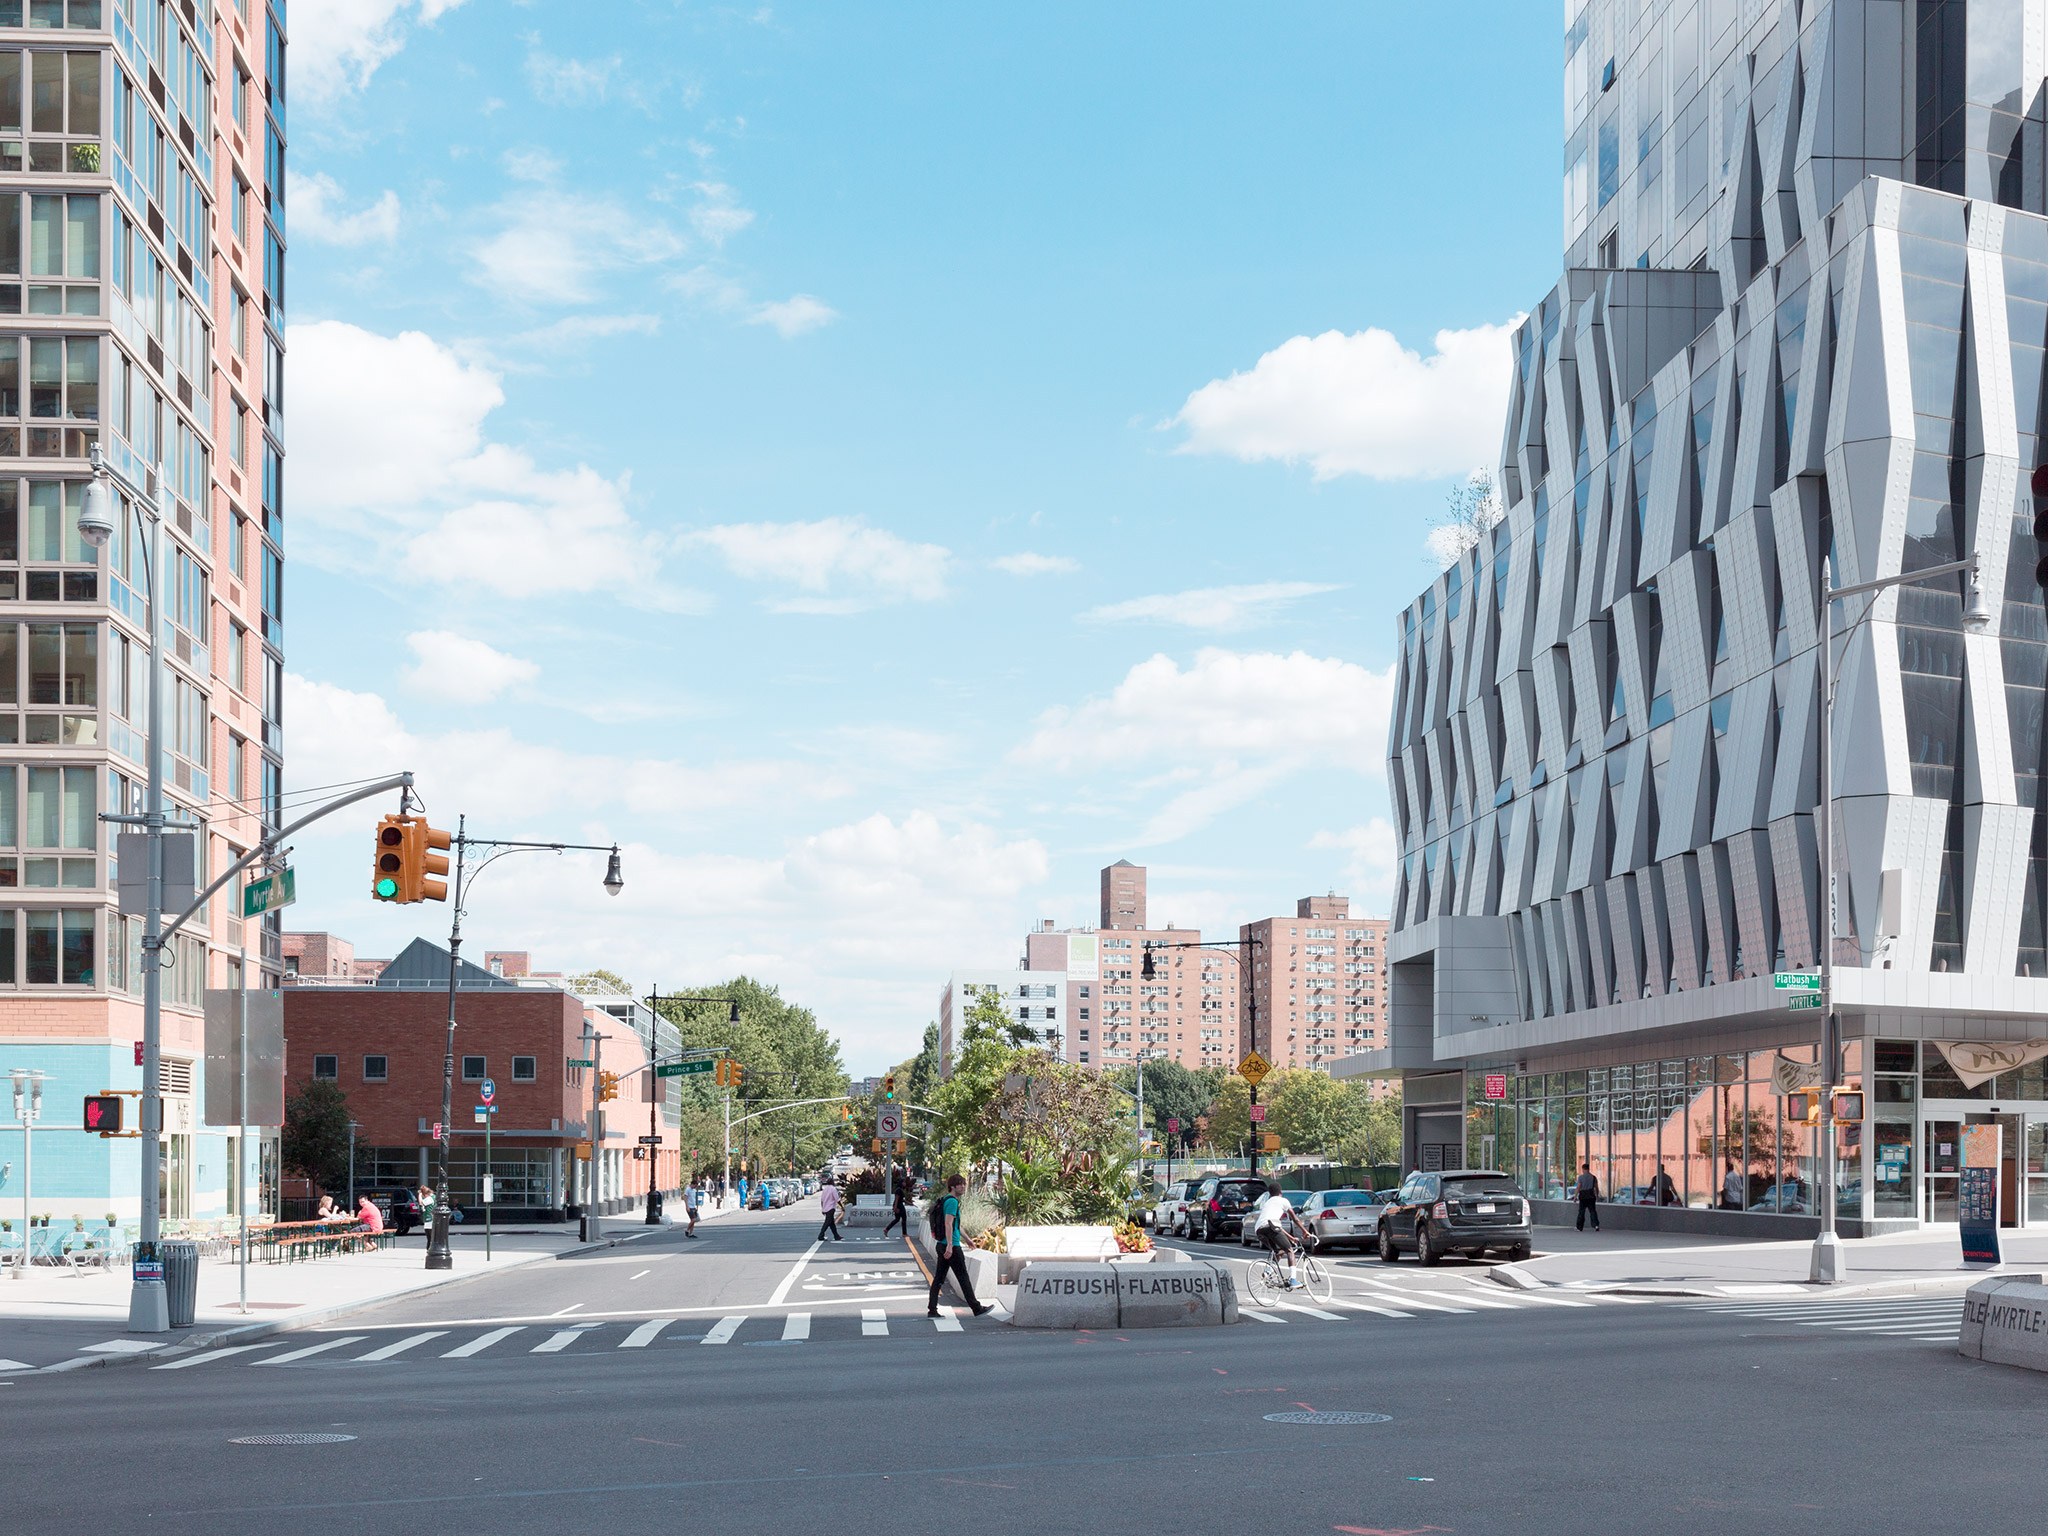 After Construction   Downtown September 16th, 2012   Flatbush Ave. and Myrtle Ave.  40.693658, -73.983523